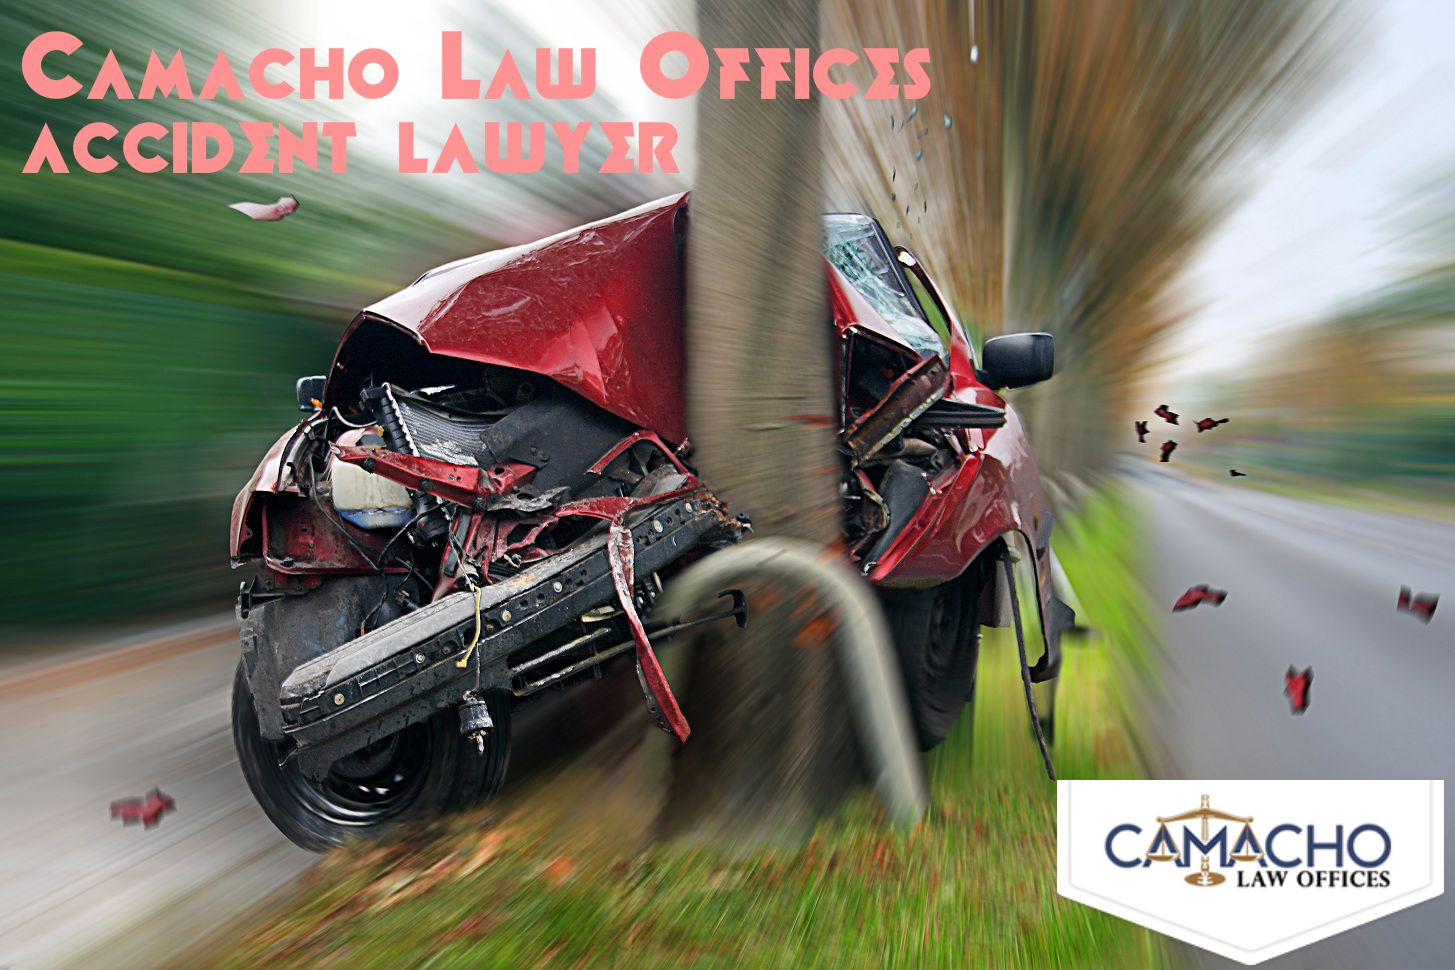 If yes, then in Norwalk Camacho Law Offices accident